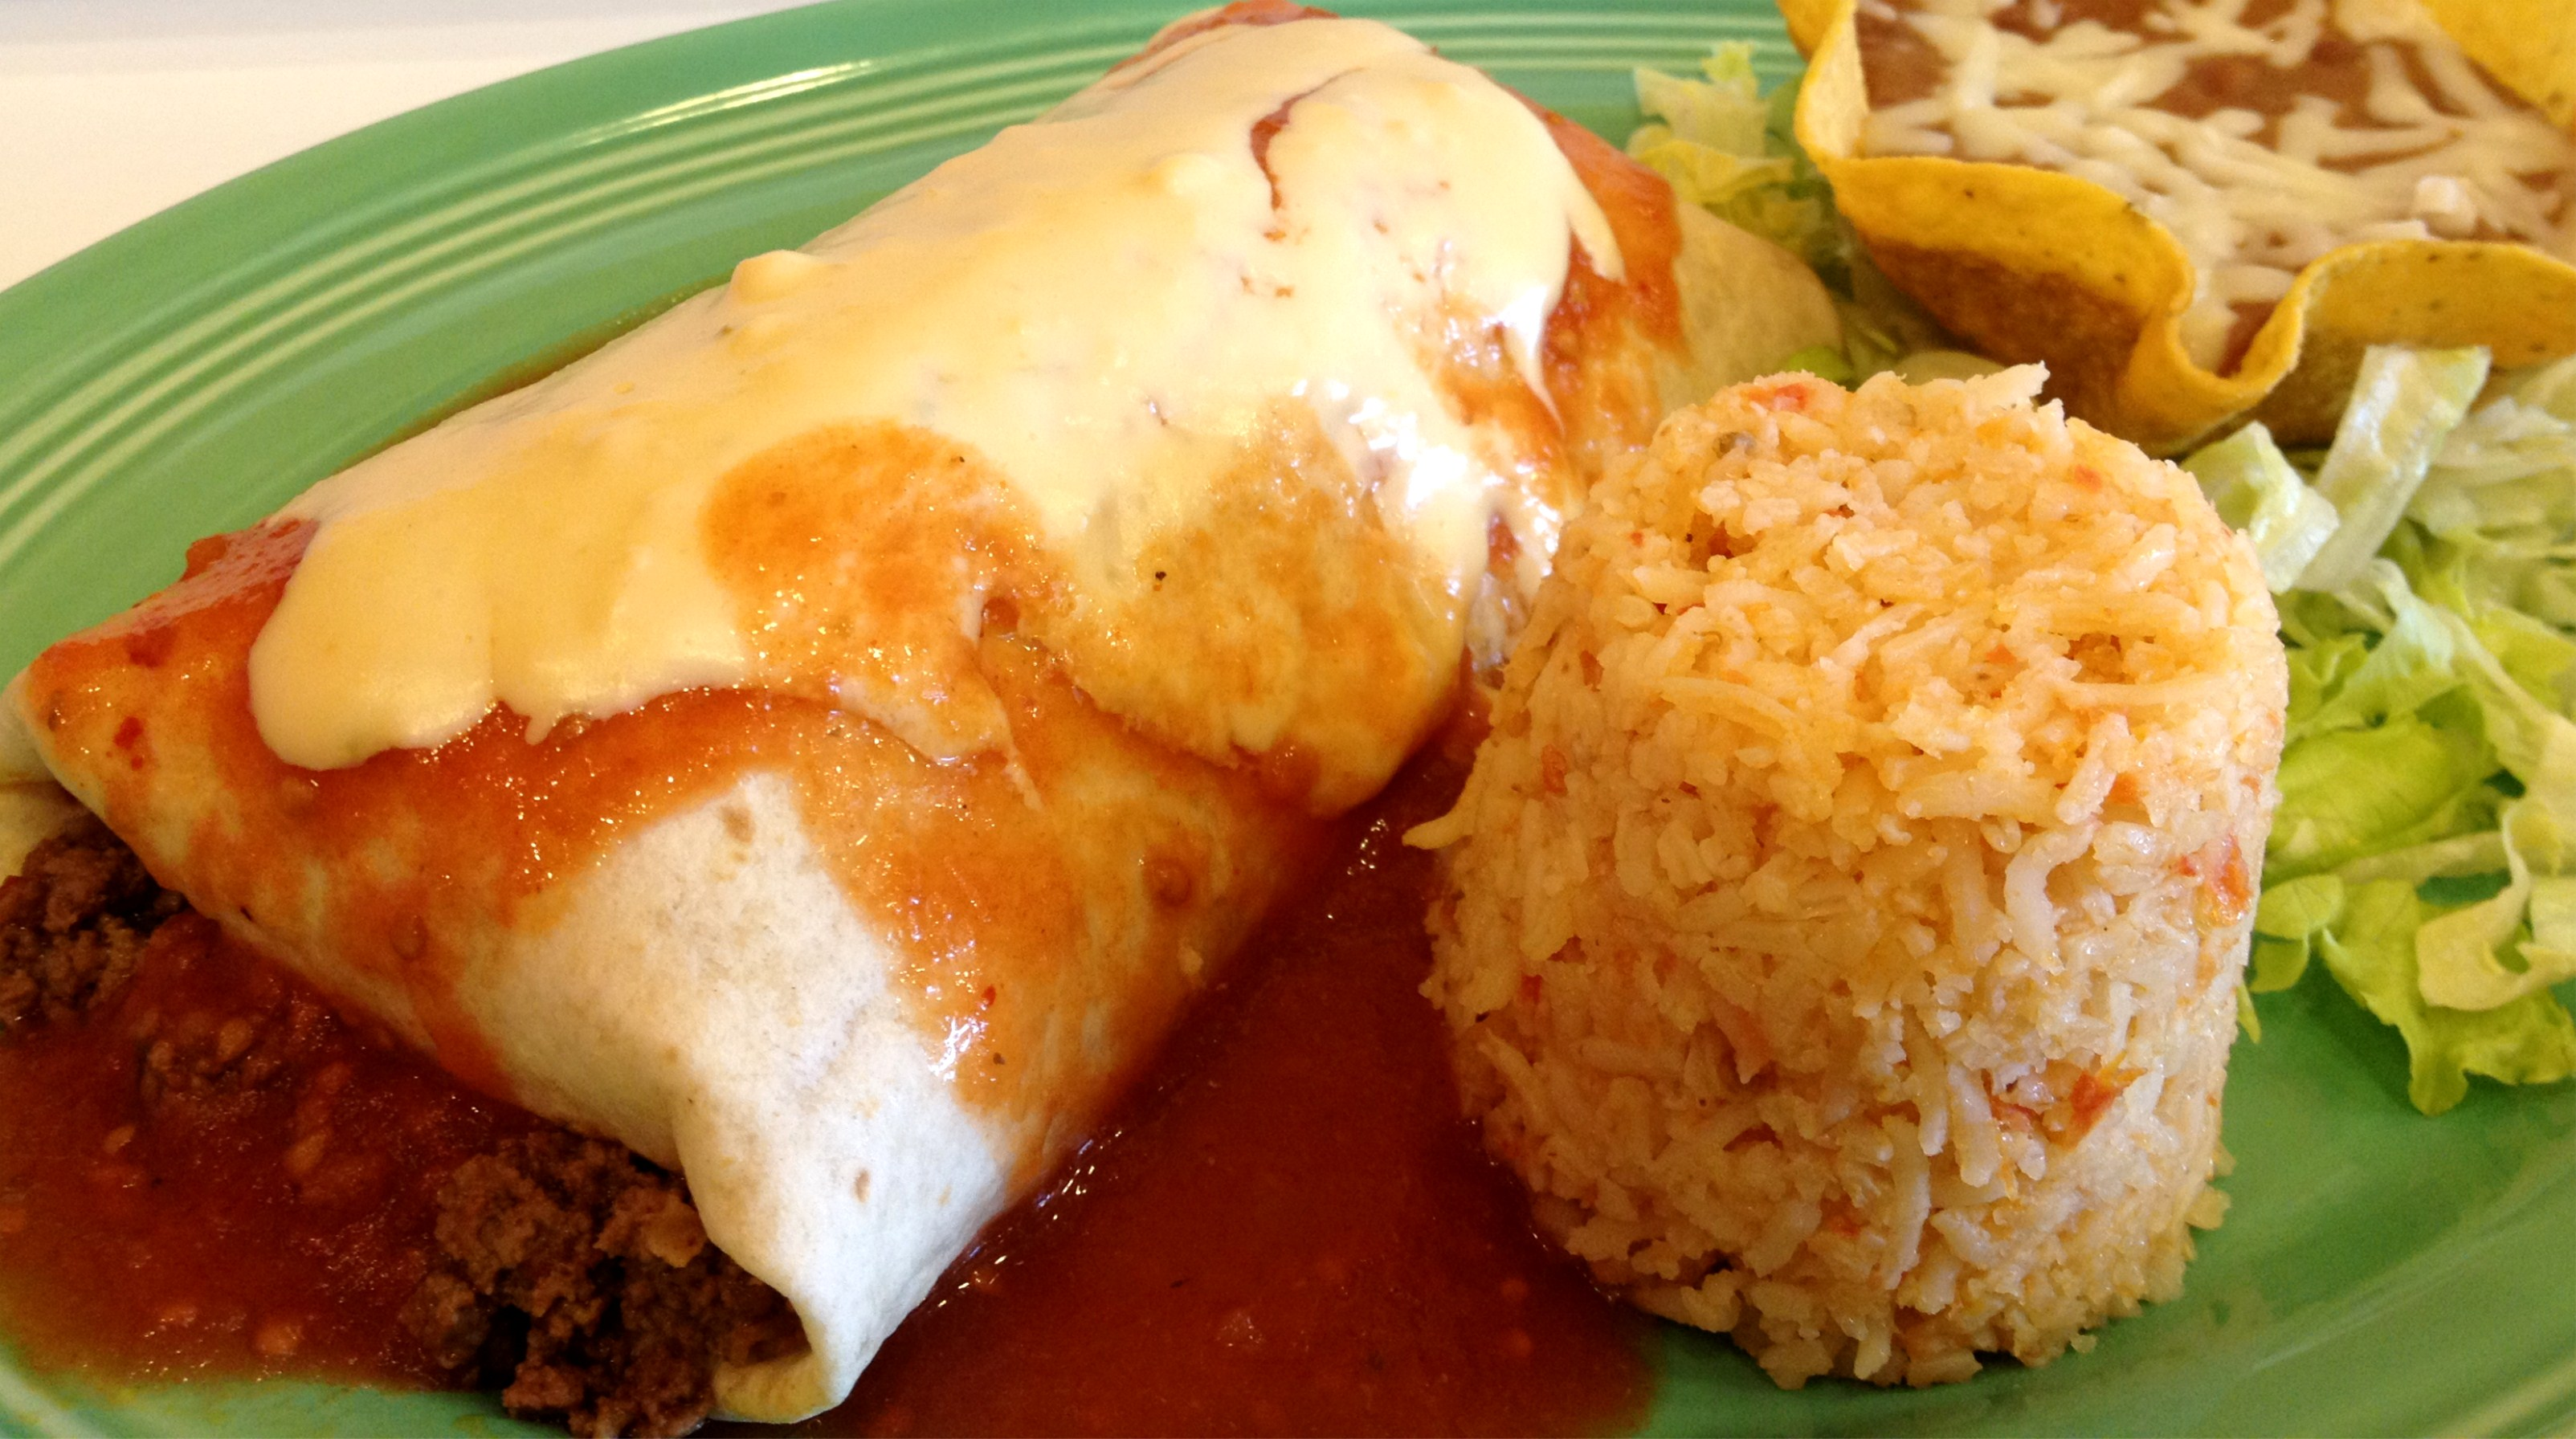 Traditional Burrito Image